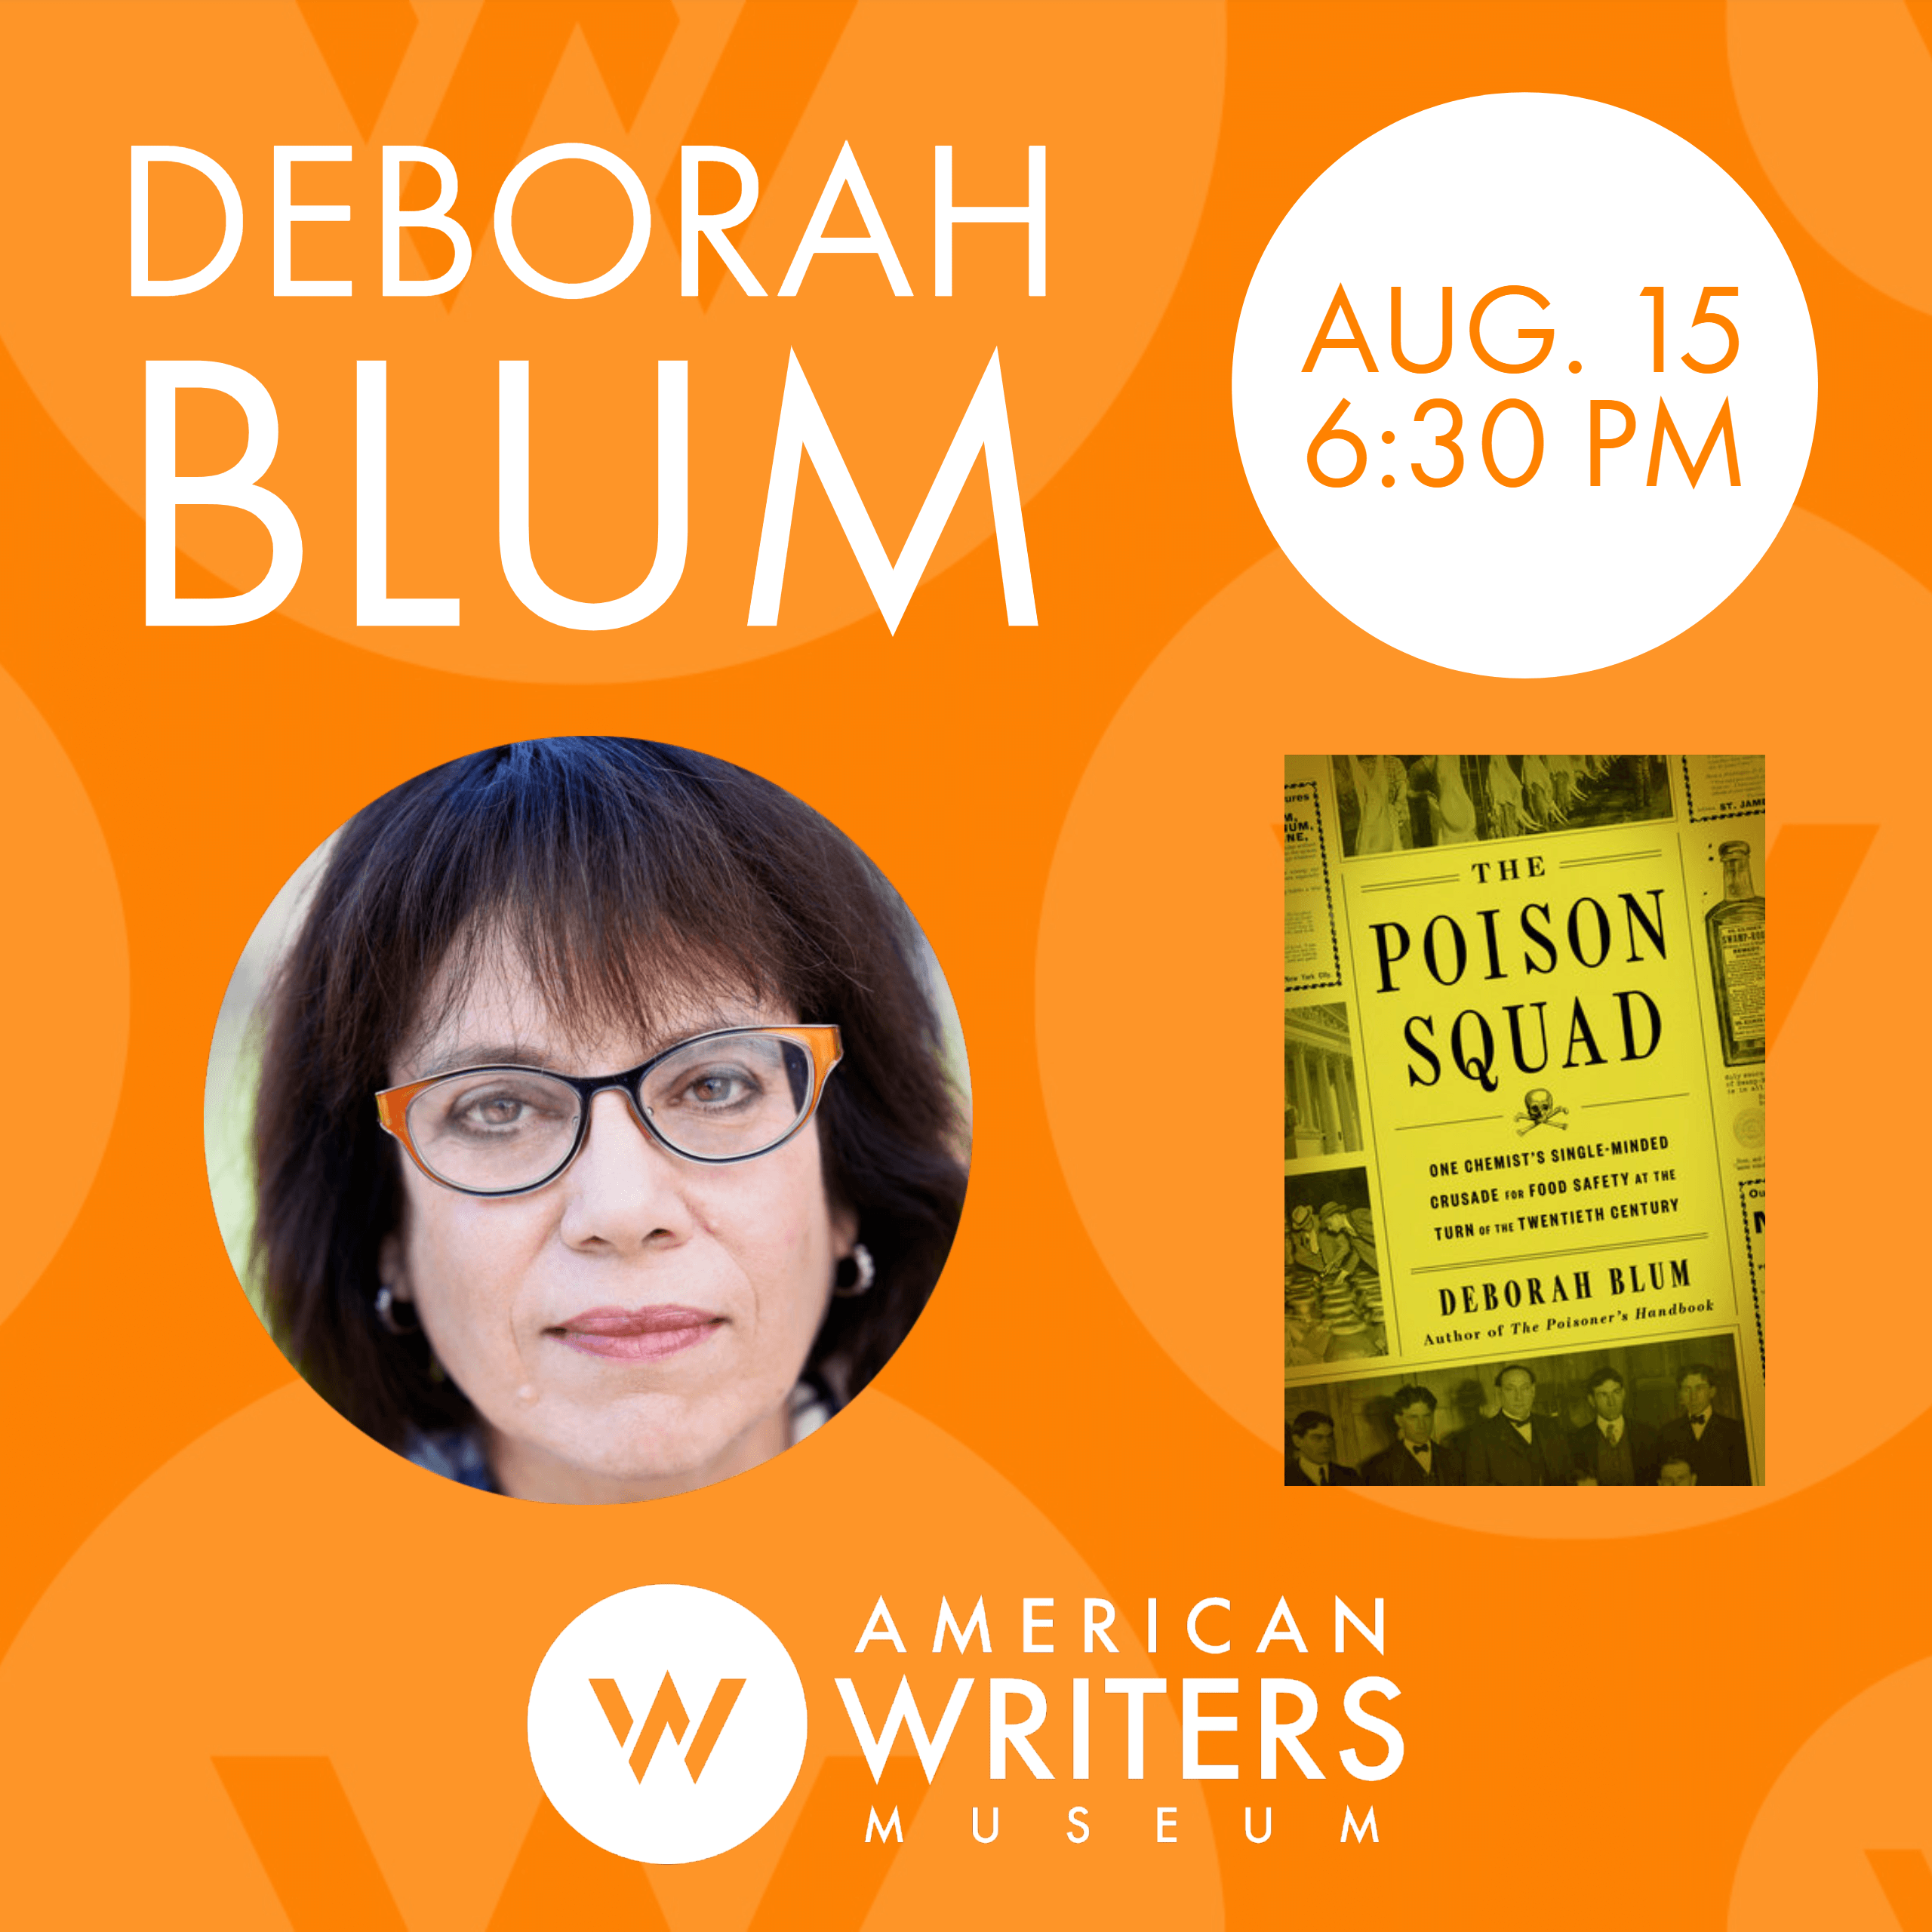 Deborah Blum at the American Writers Museum on August 15